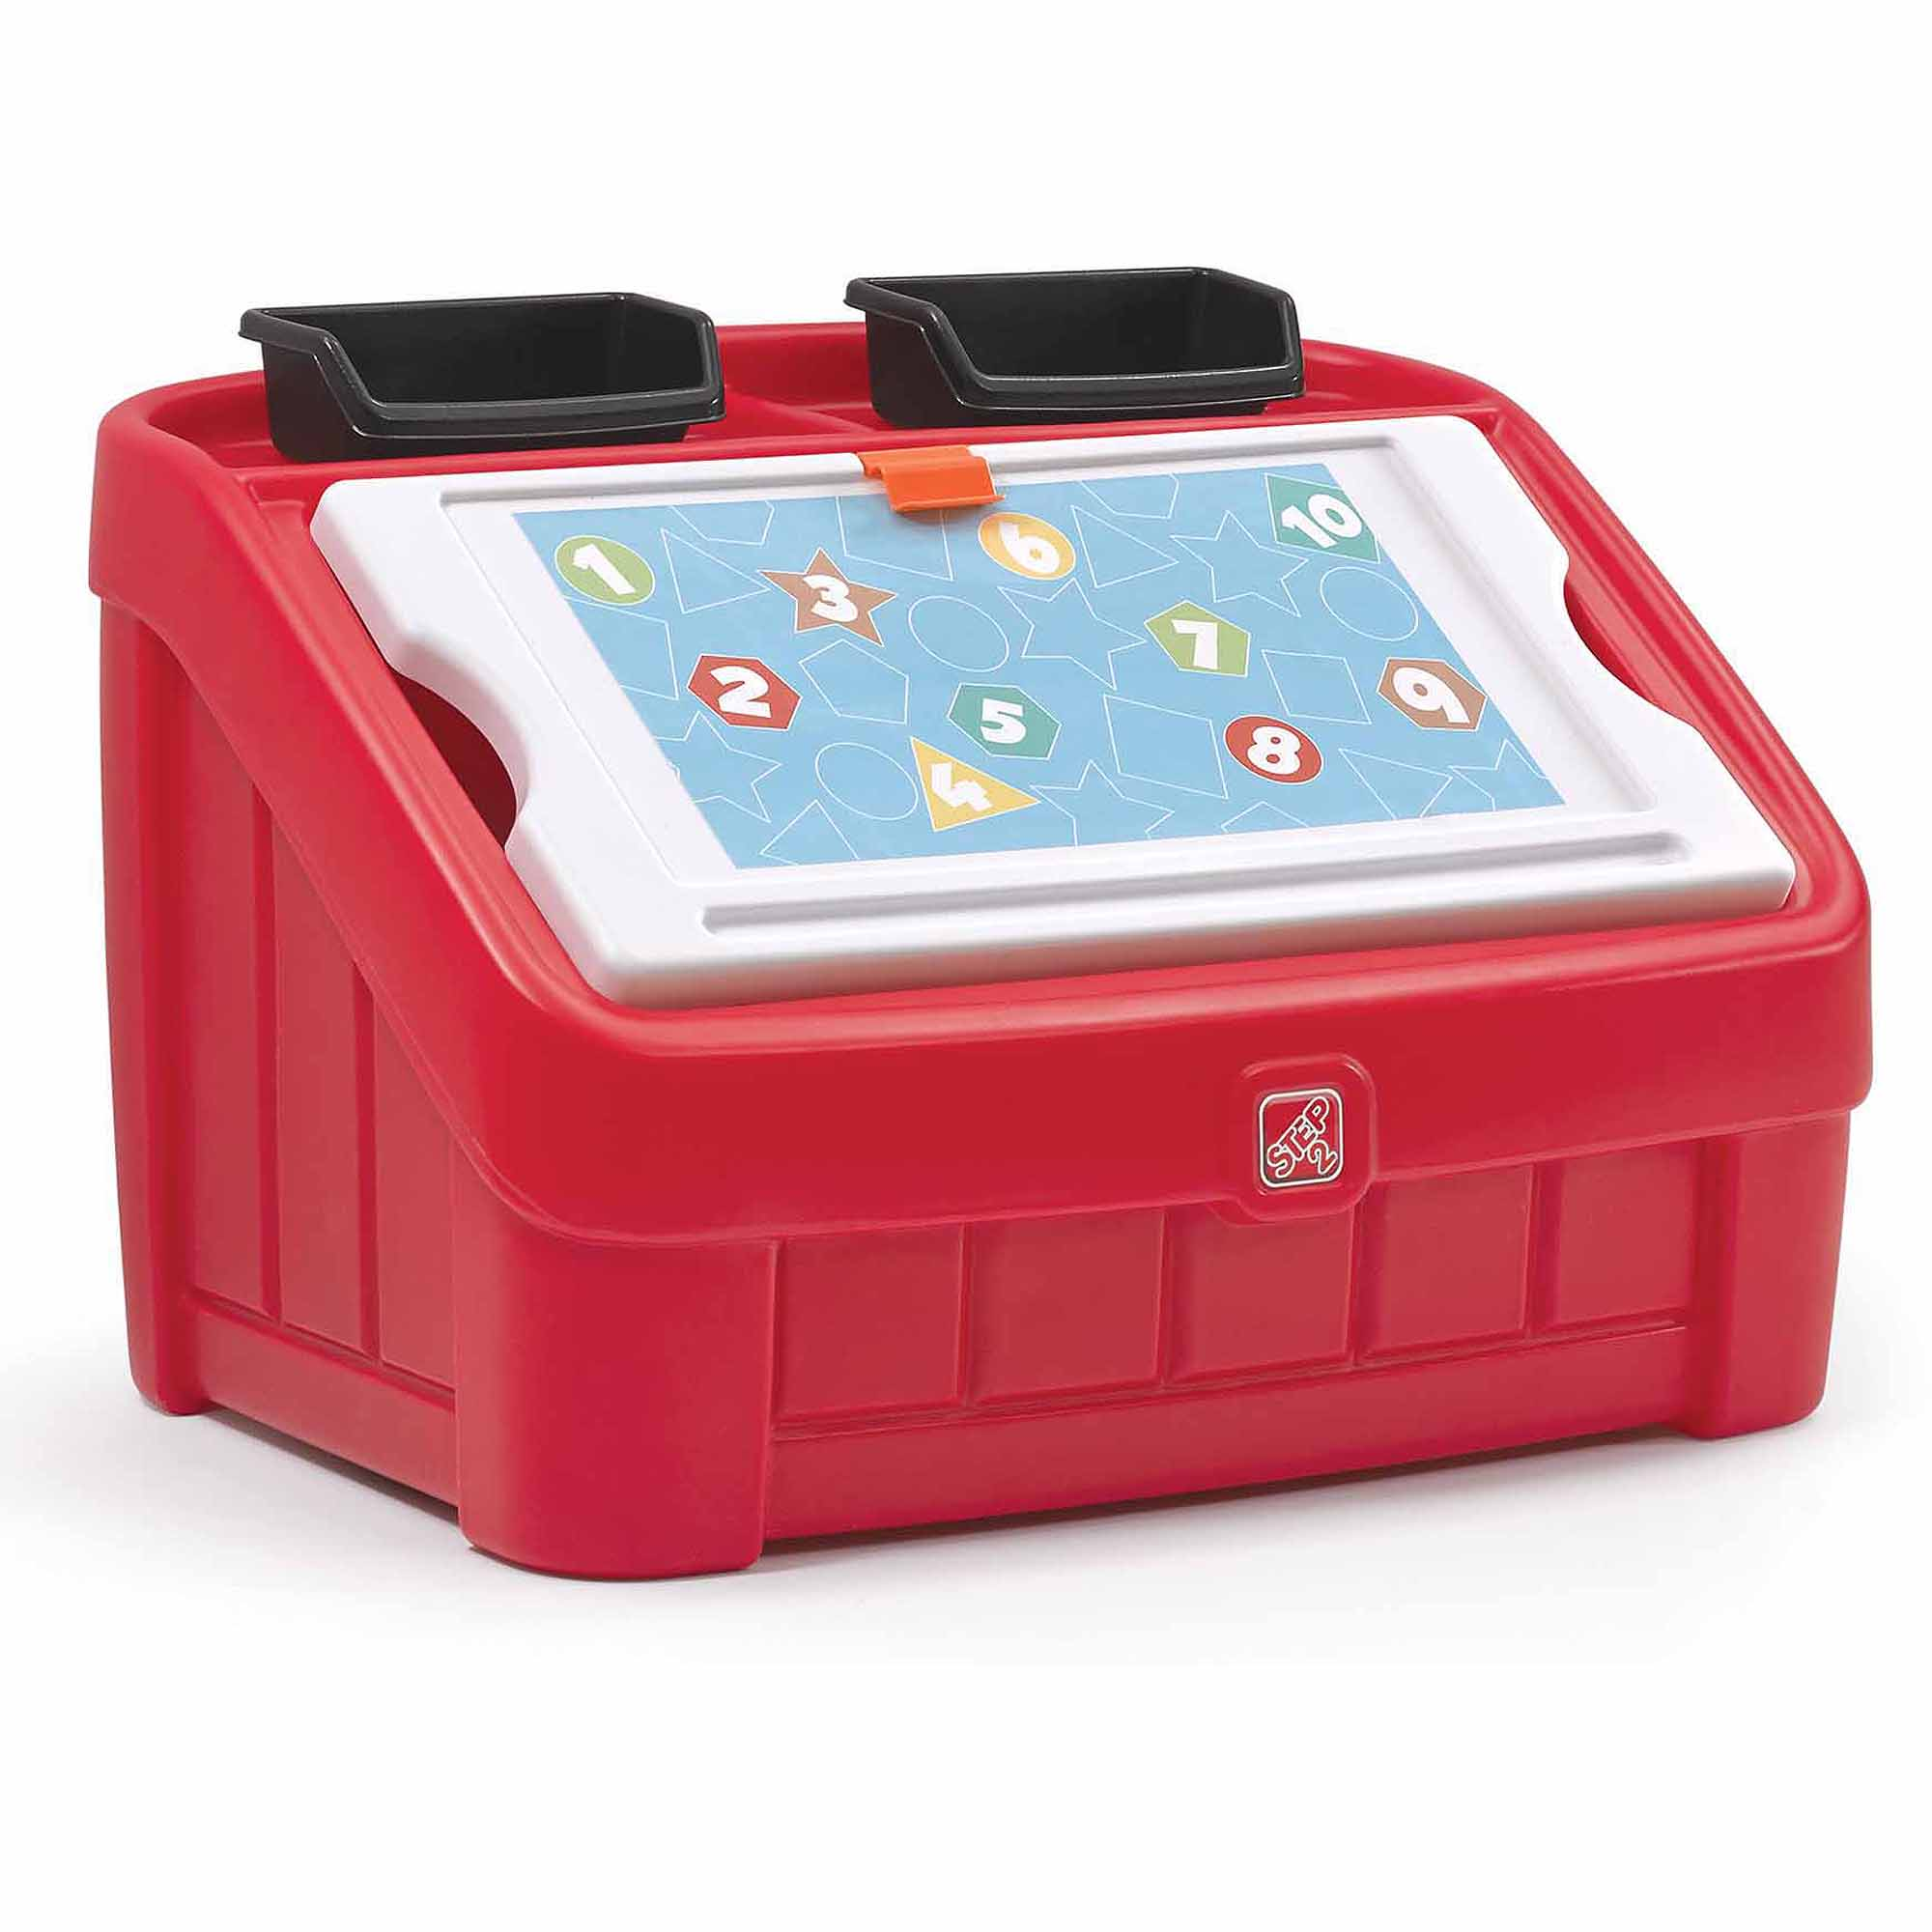 Step2 2-in-1 Art Toy Box, Red